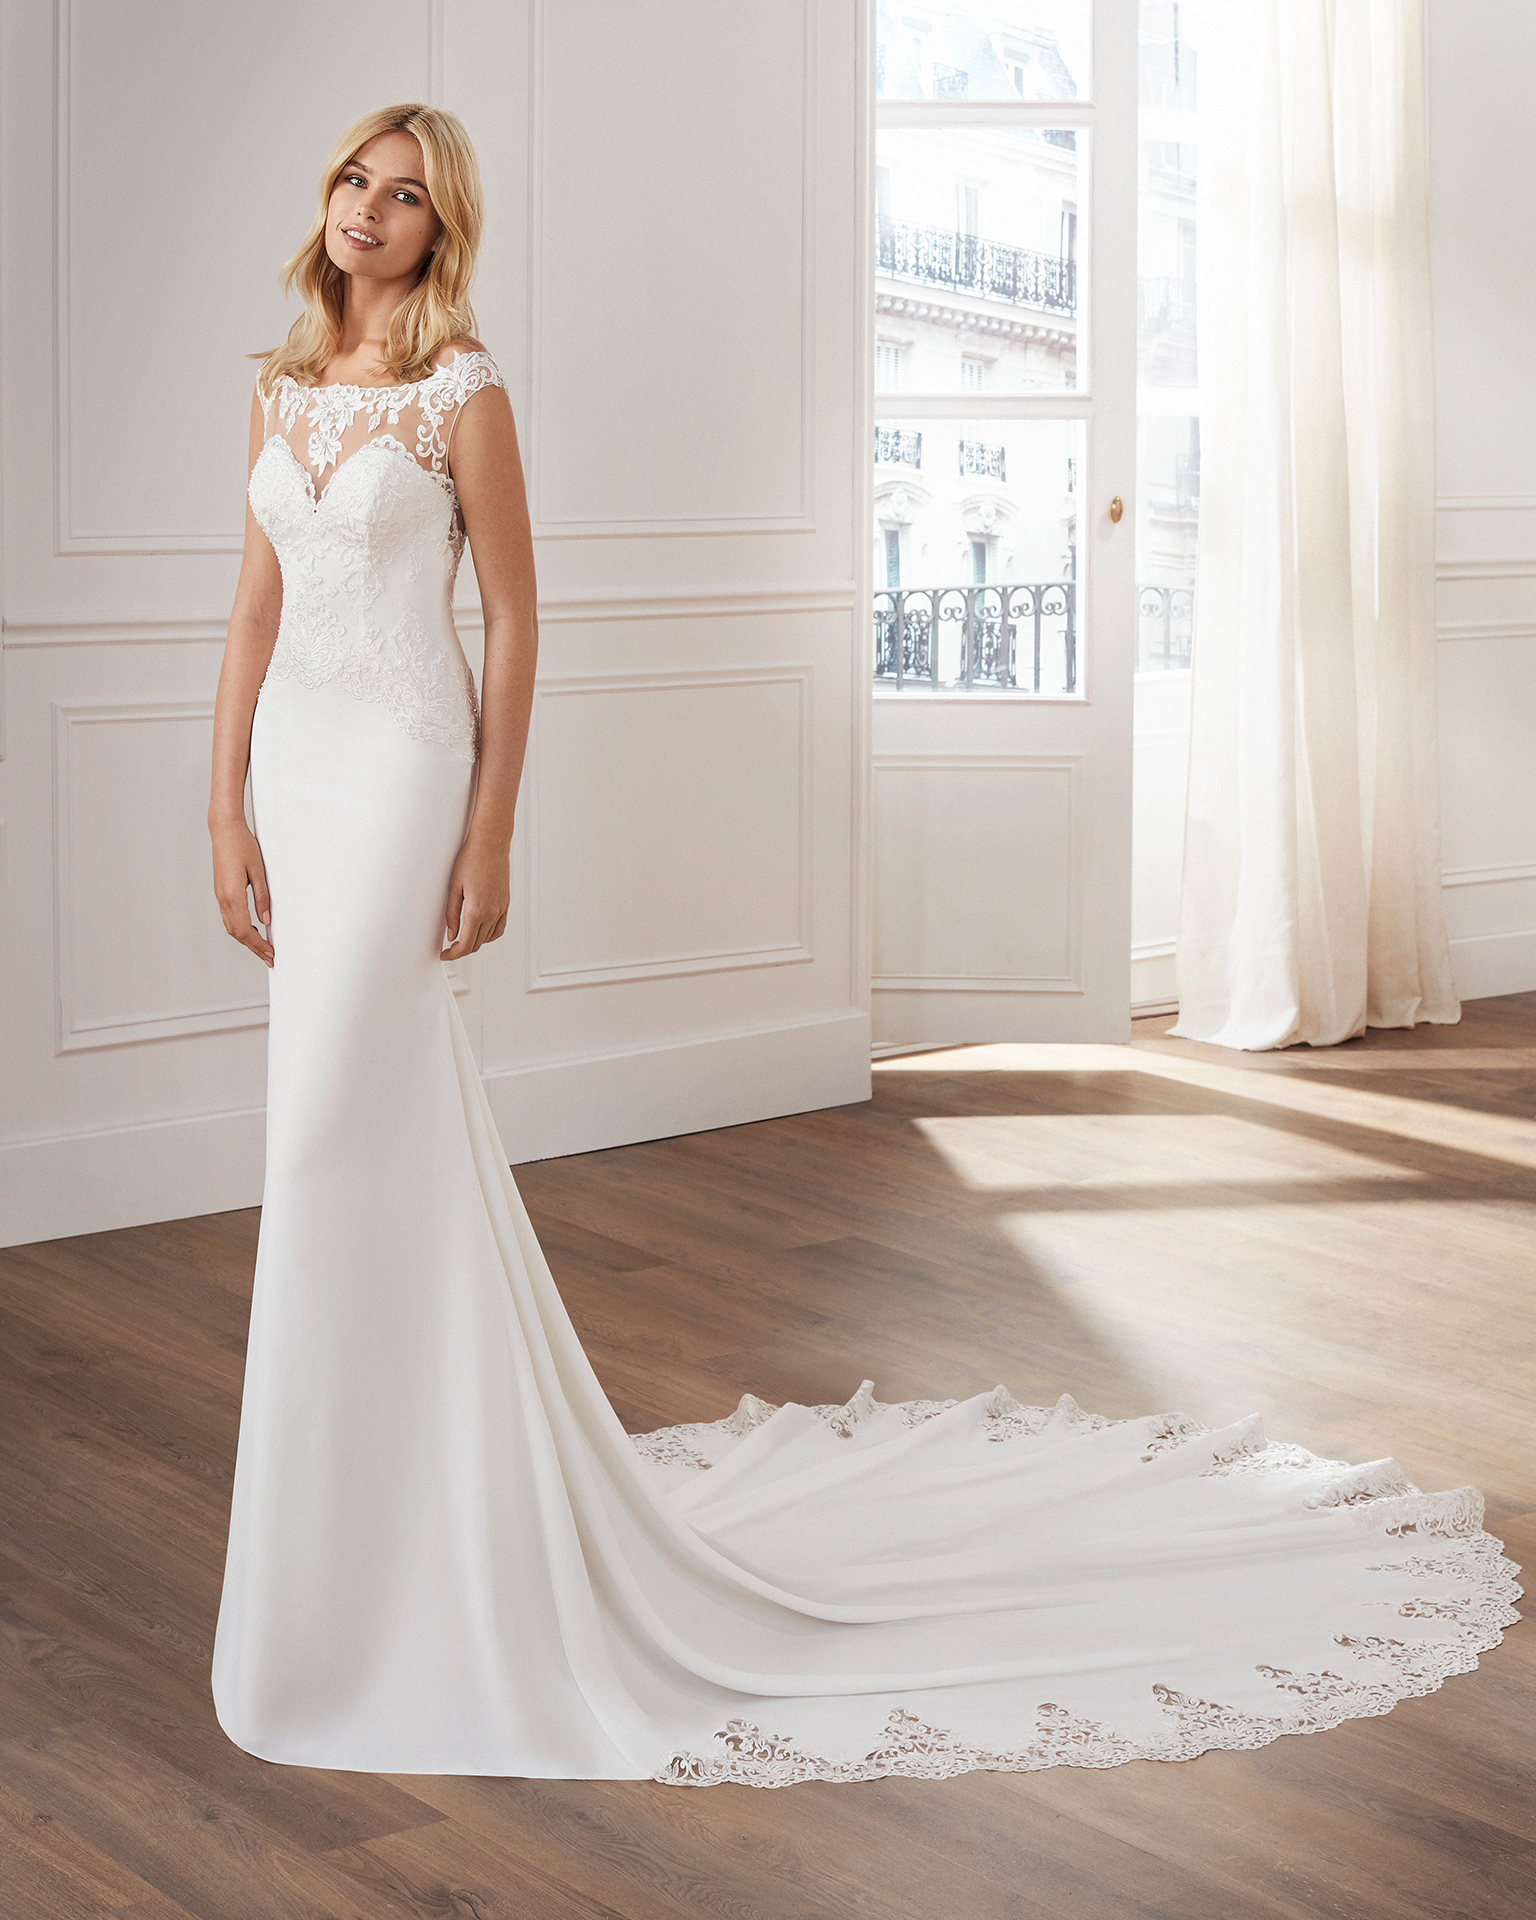 Sheath-style wedding dress in crepe. Sleeveless beaded lace bodice with illusion neckline and train edged with lace. Available in natural. 2019  Collection.